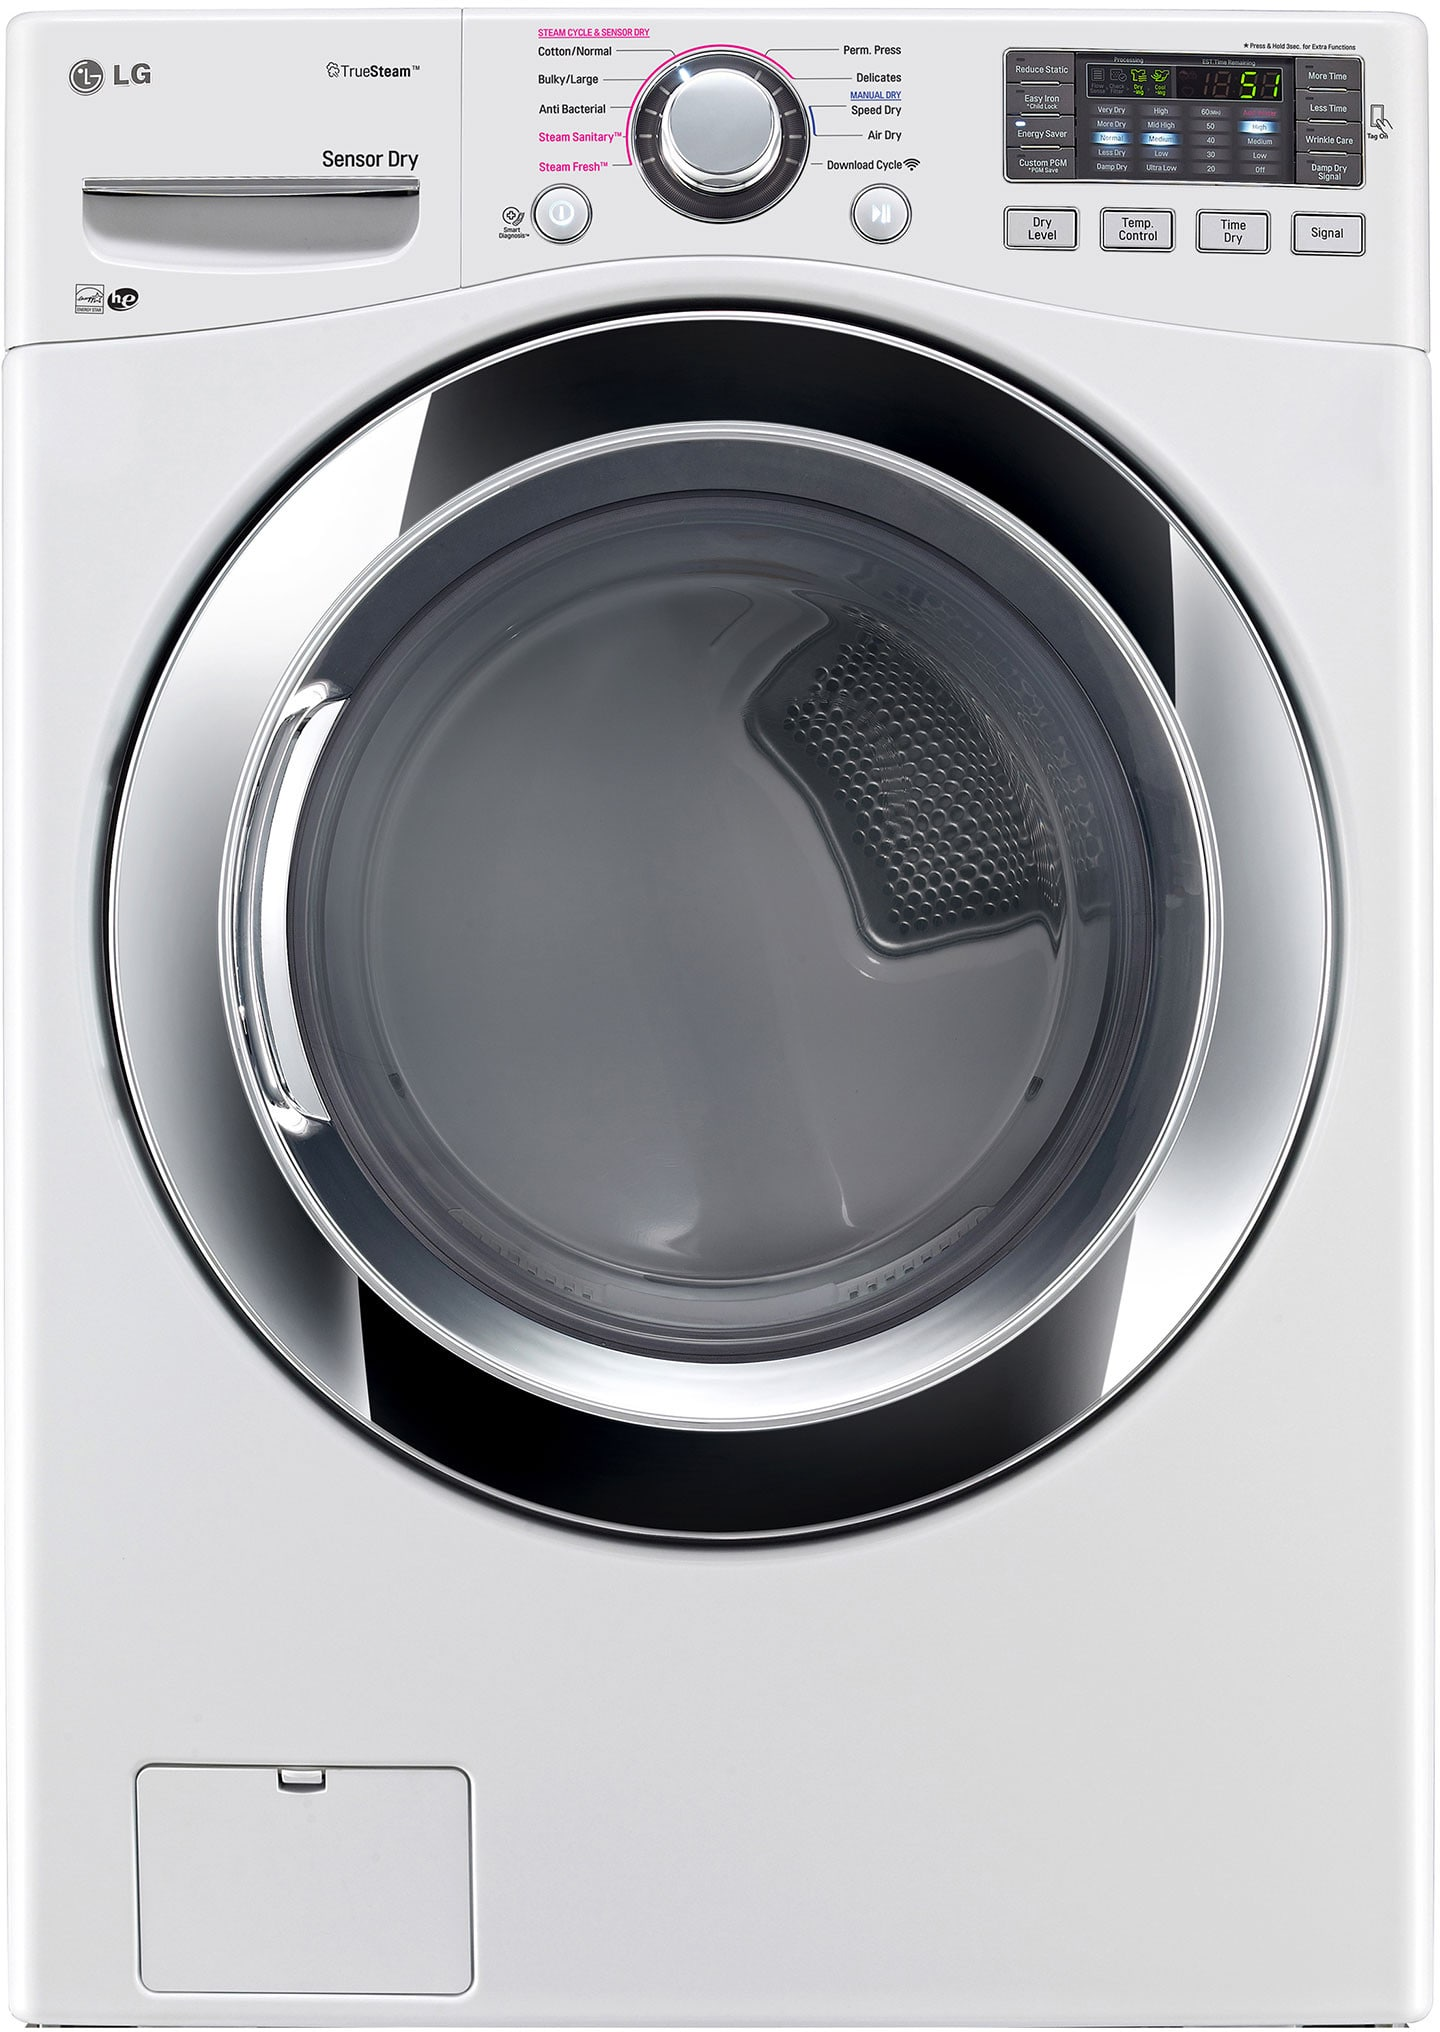 Lg Wm3370hwa 27 Inch 4 3 Cu Ft Front Load Washer With 7